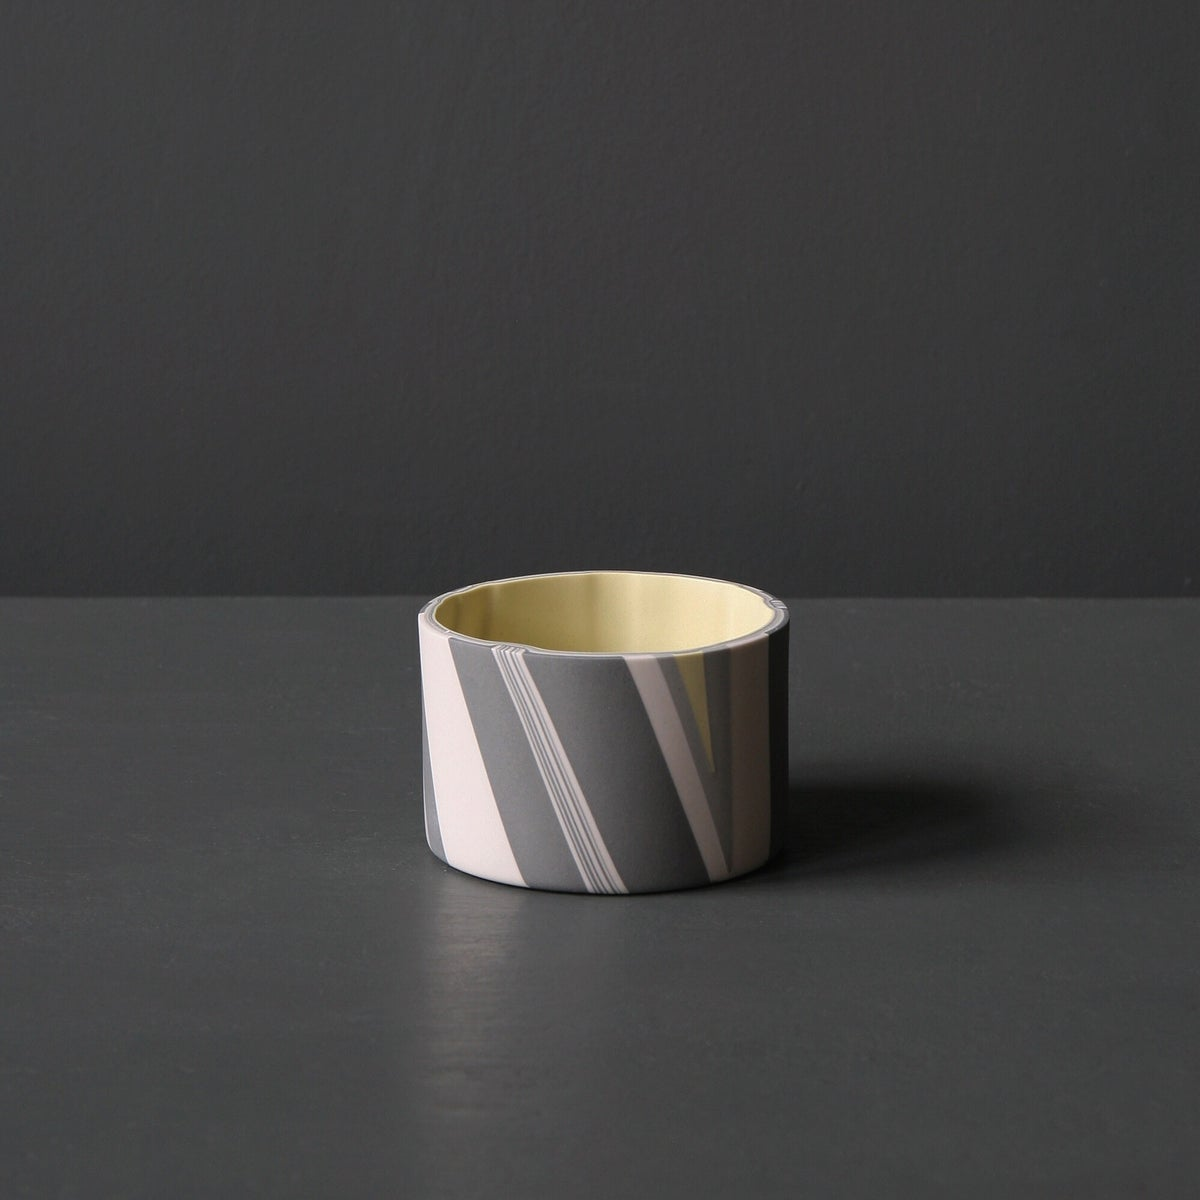 Image of Medium Inlay Detail Vessel, Yellow and Greys, with yellow interior.